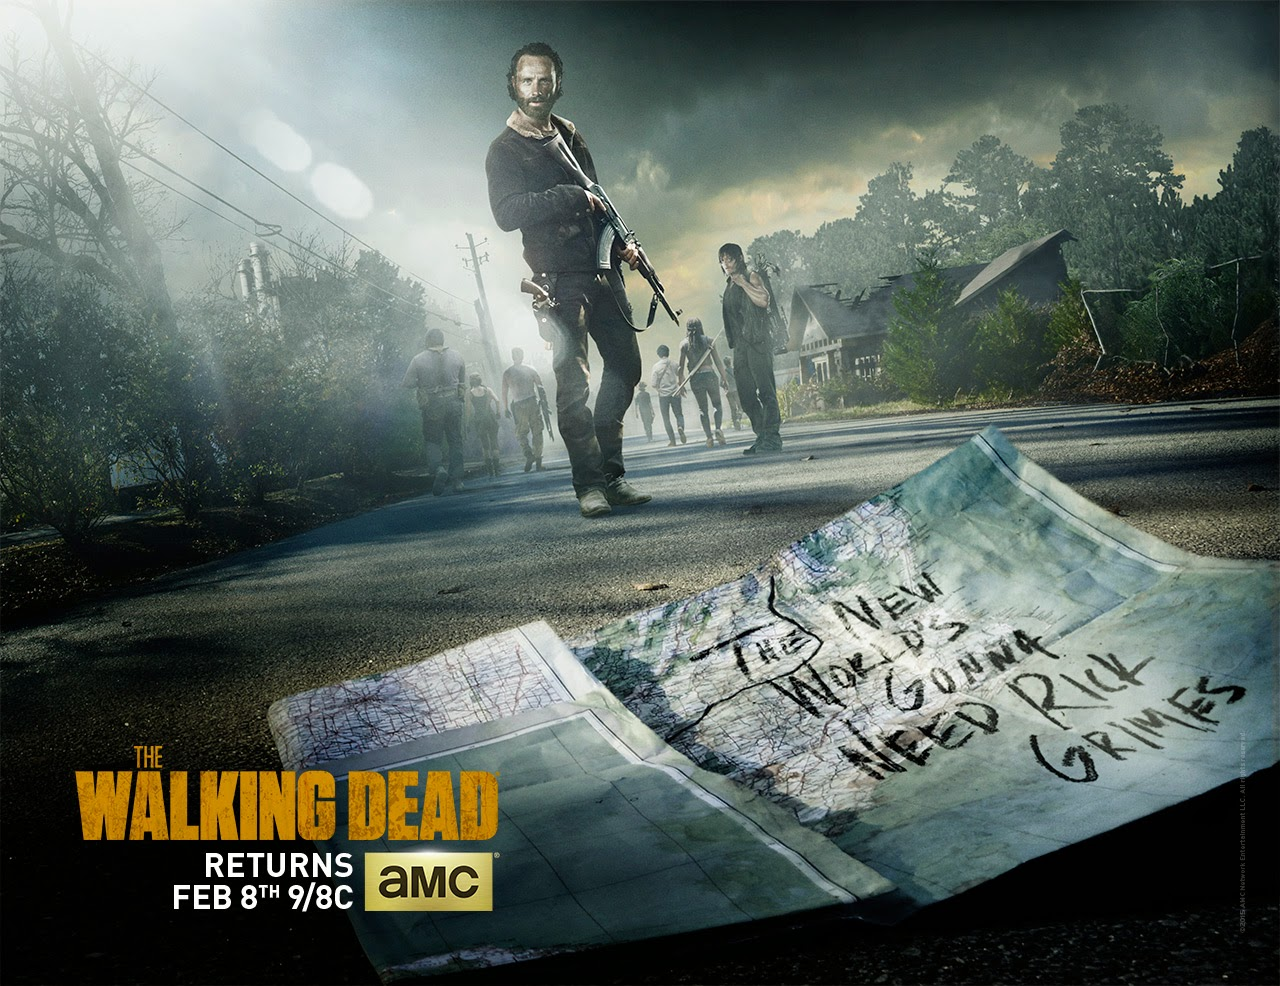 The Walking Dead Season 5 Midseason Premiere Poster